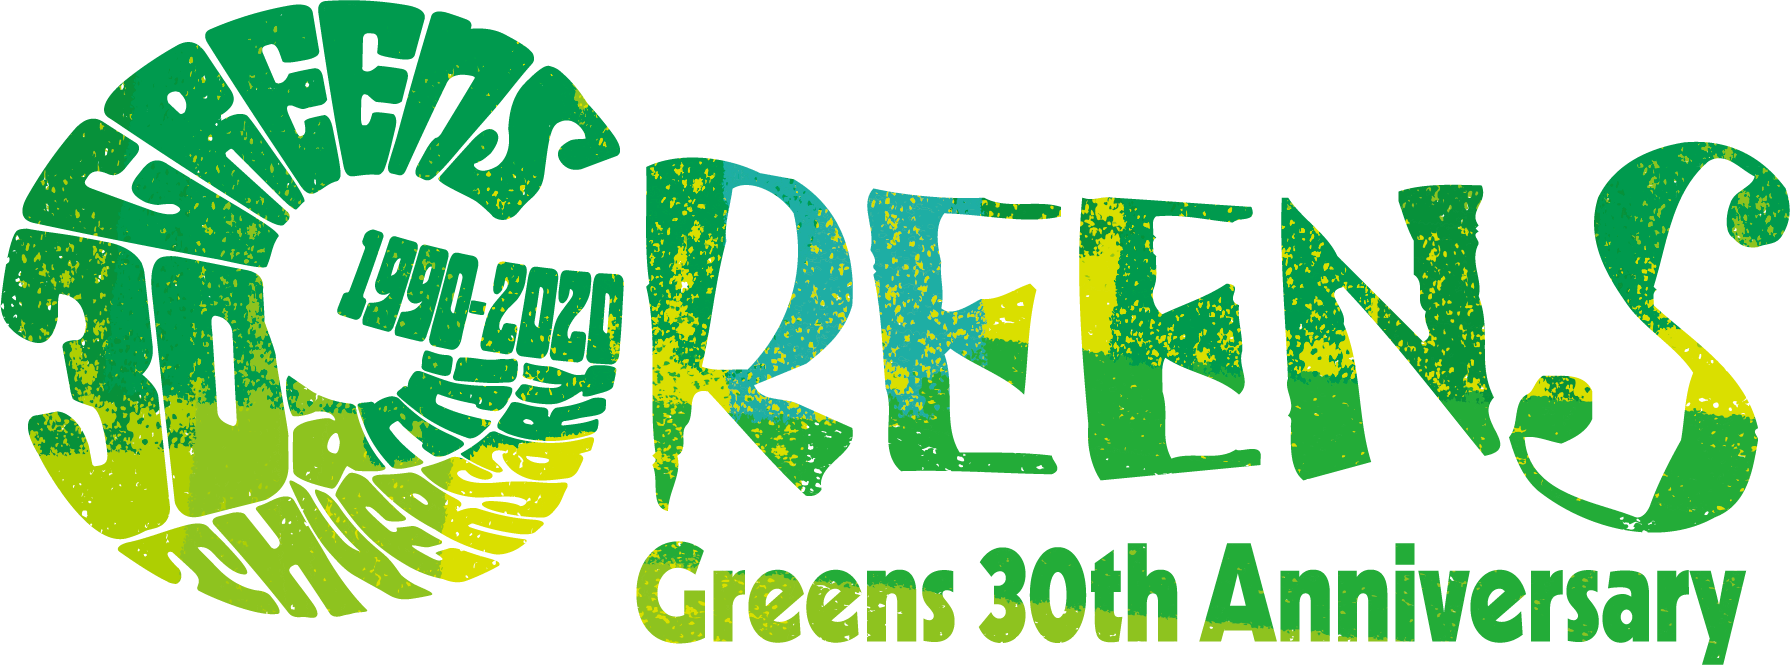 GREENS 30th Anniversary